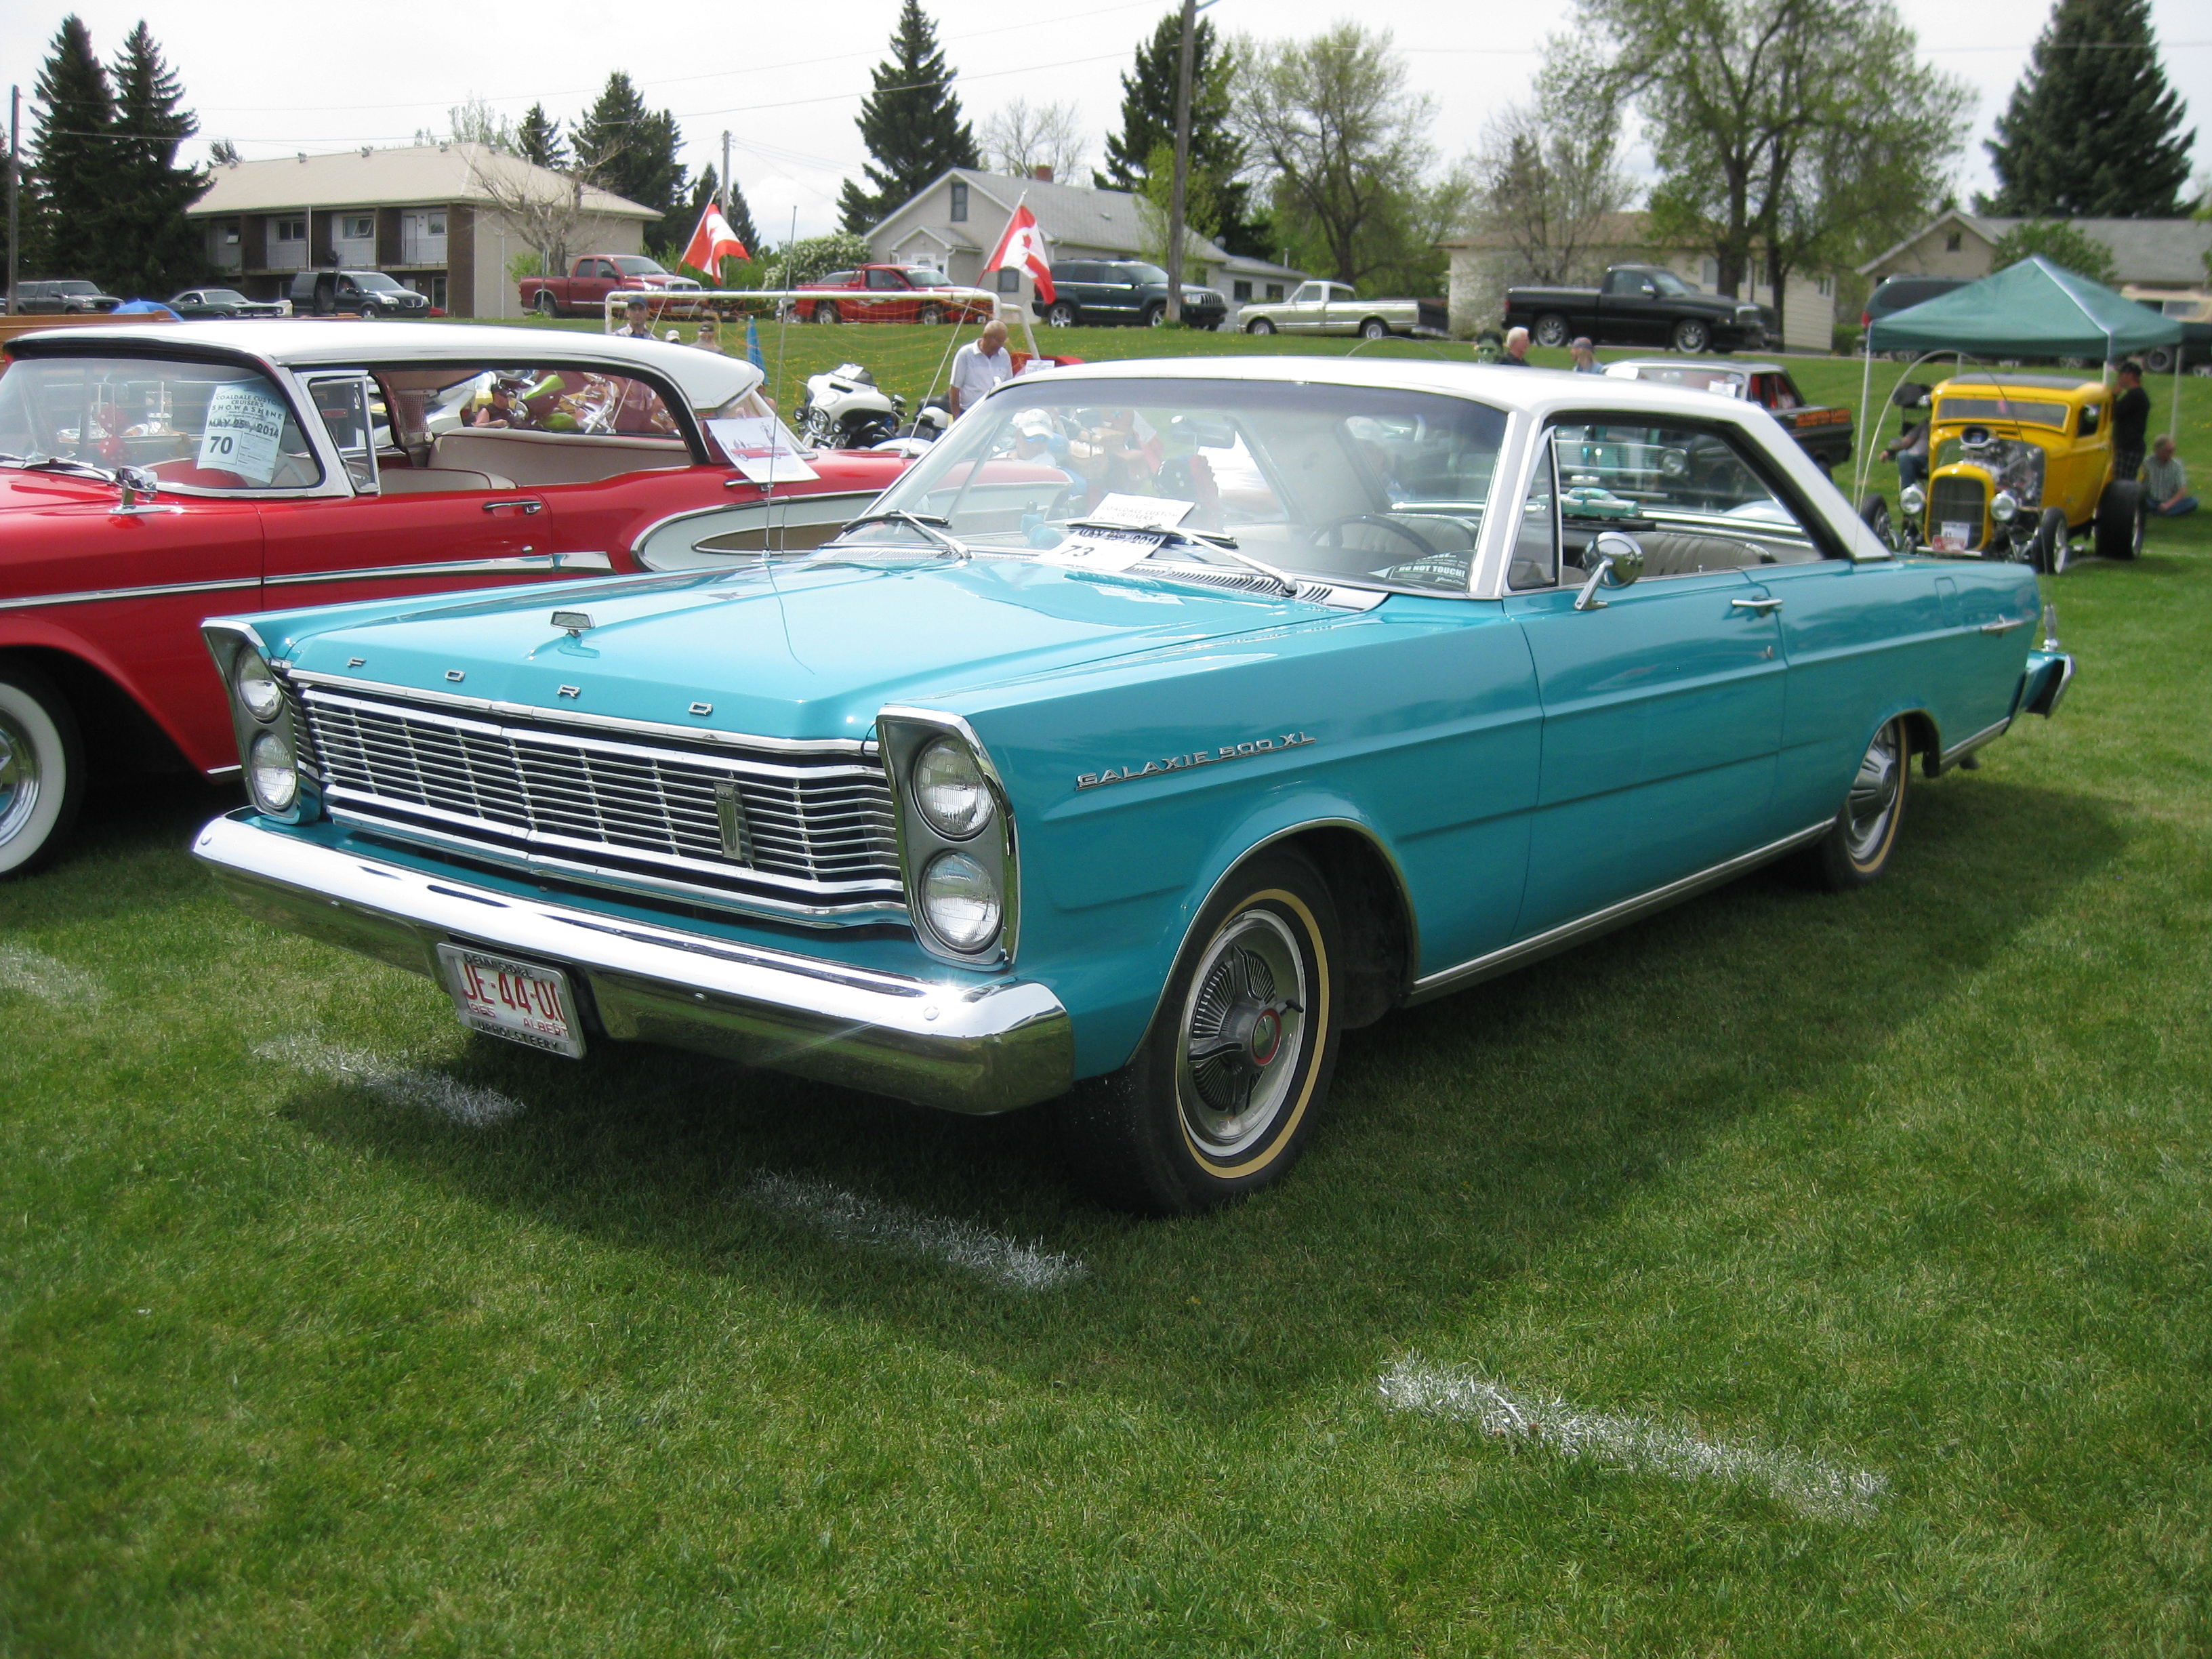 File1965 ford galaxie 500 14298503411 jpg